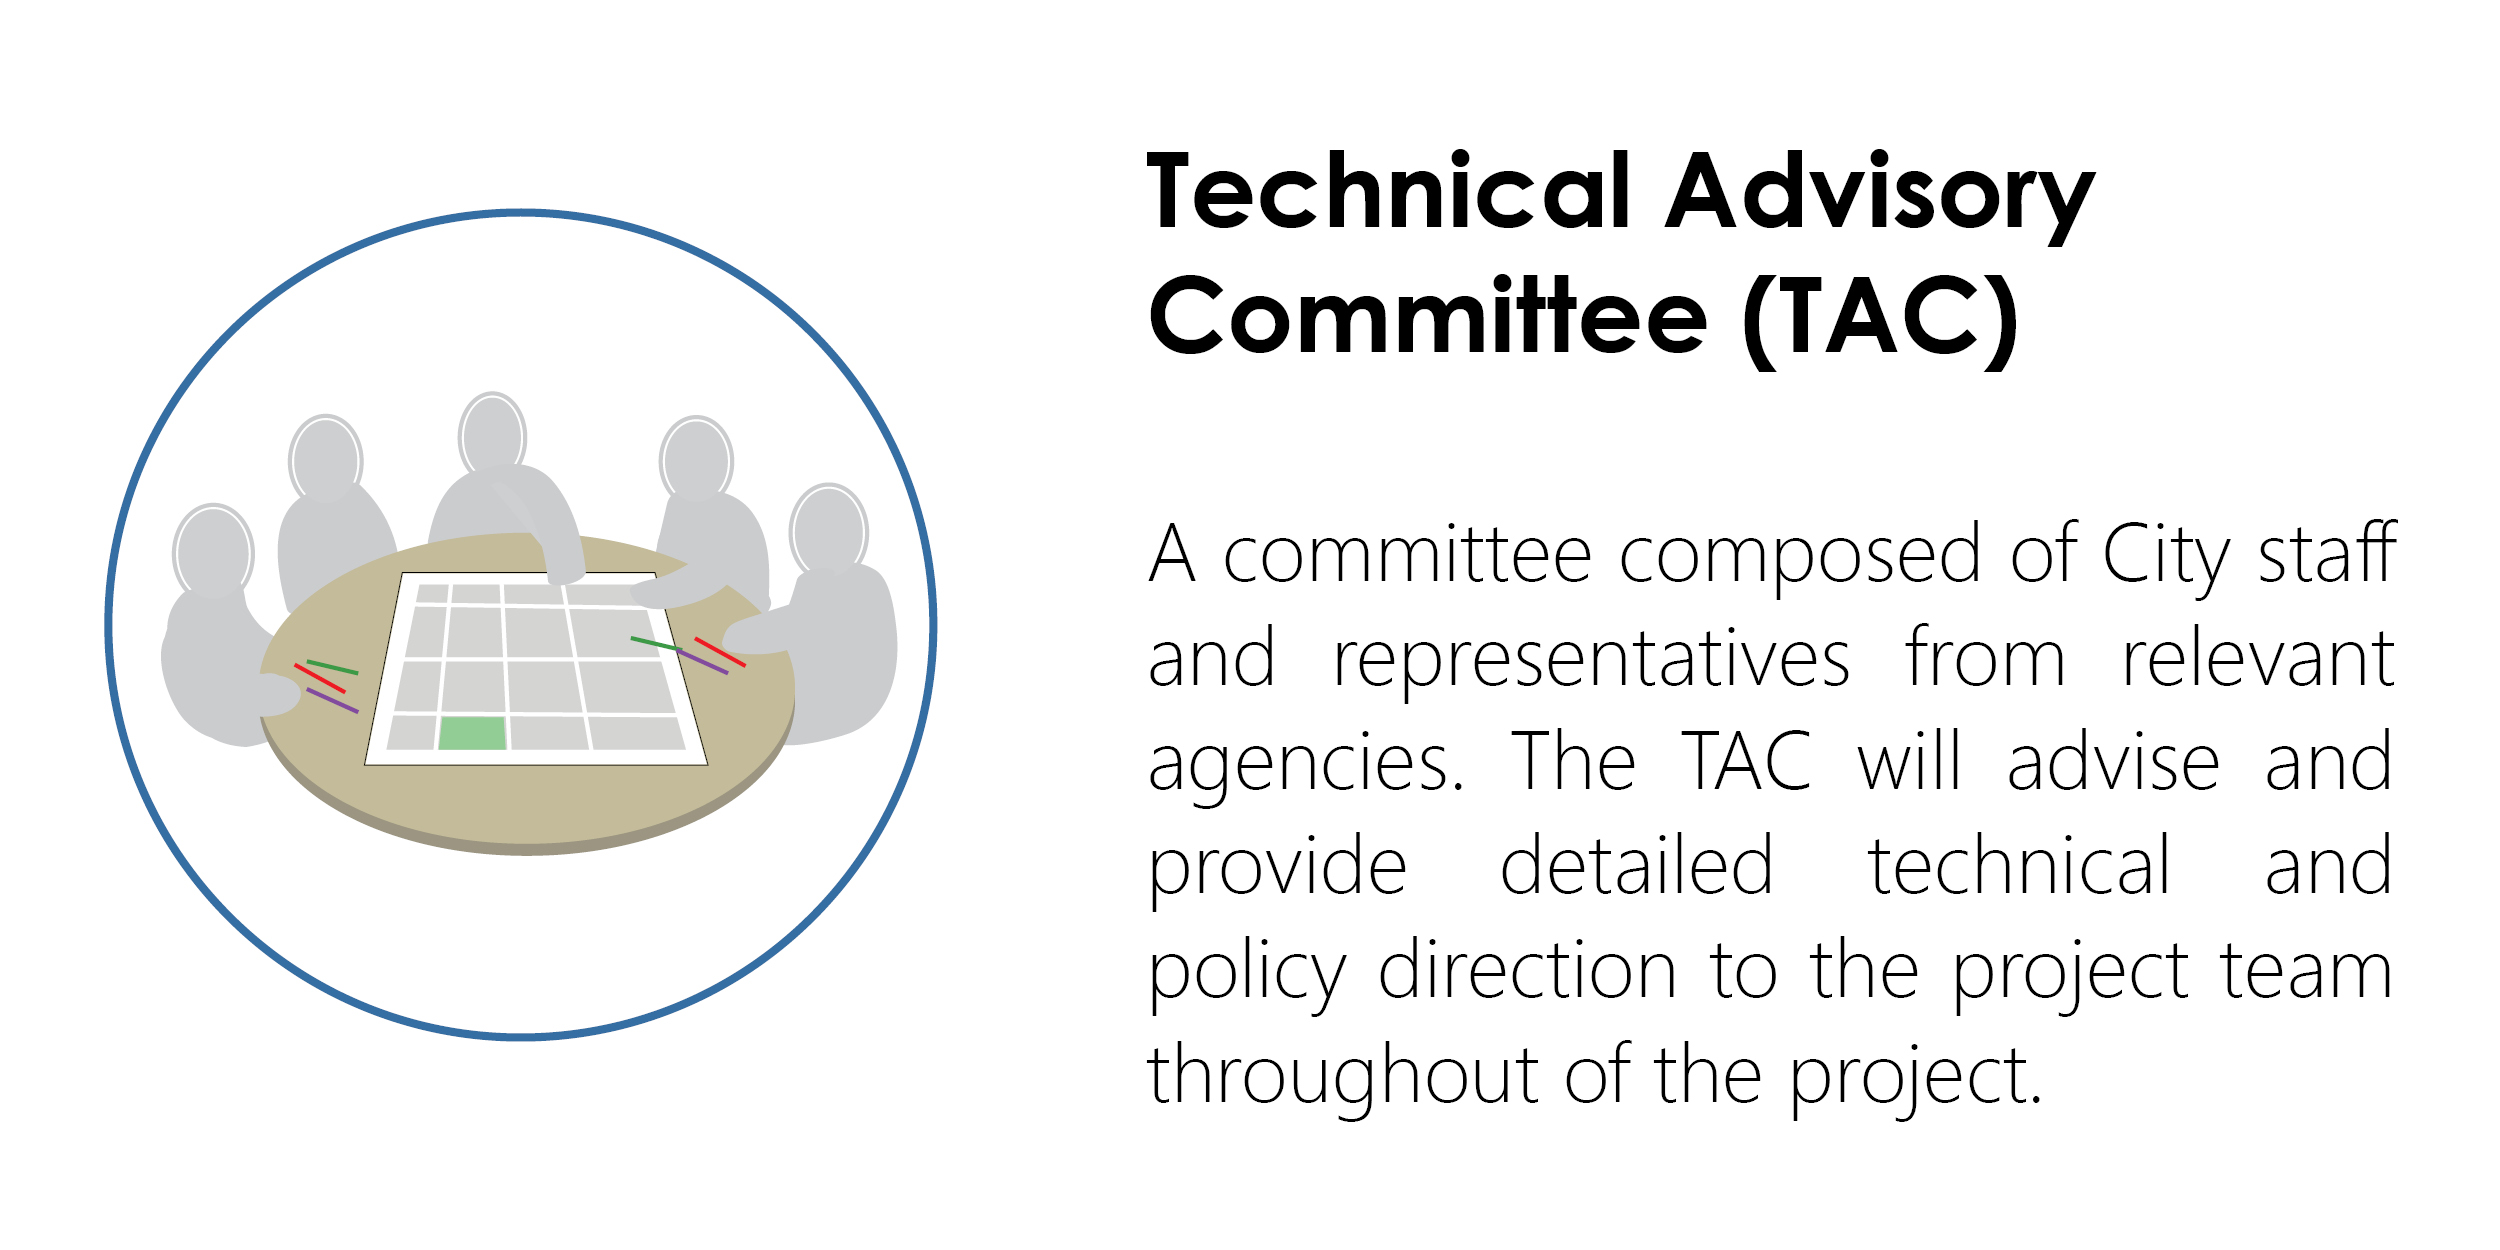 Logo and description of Technical Advisory Committee (TAC).